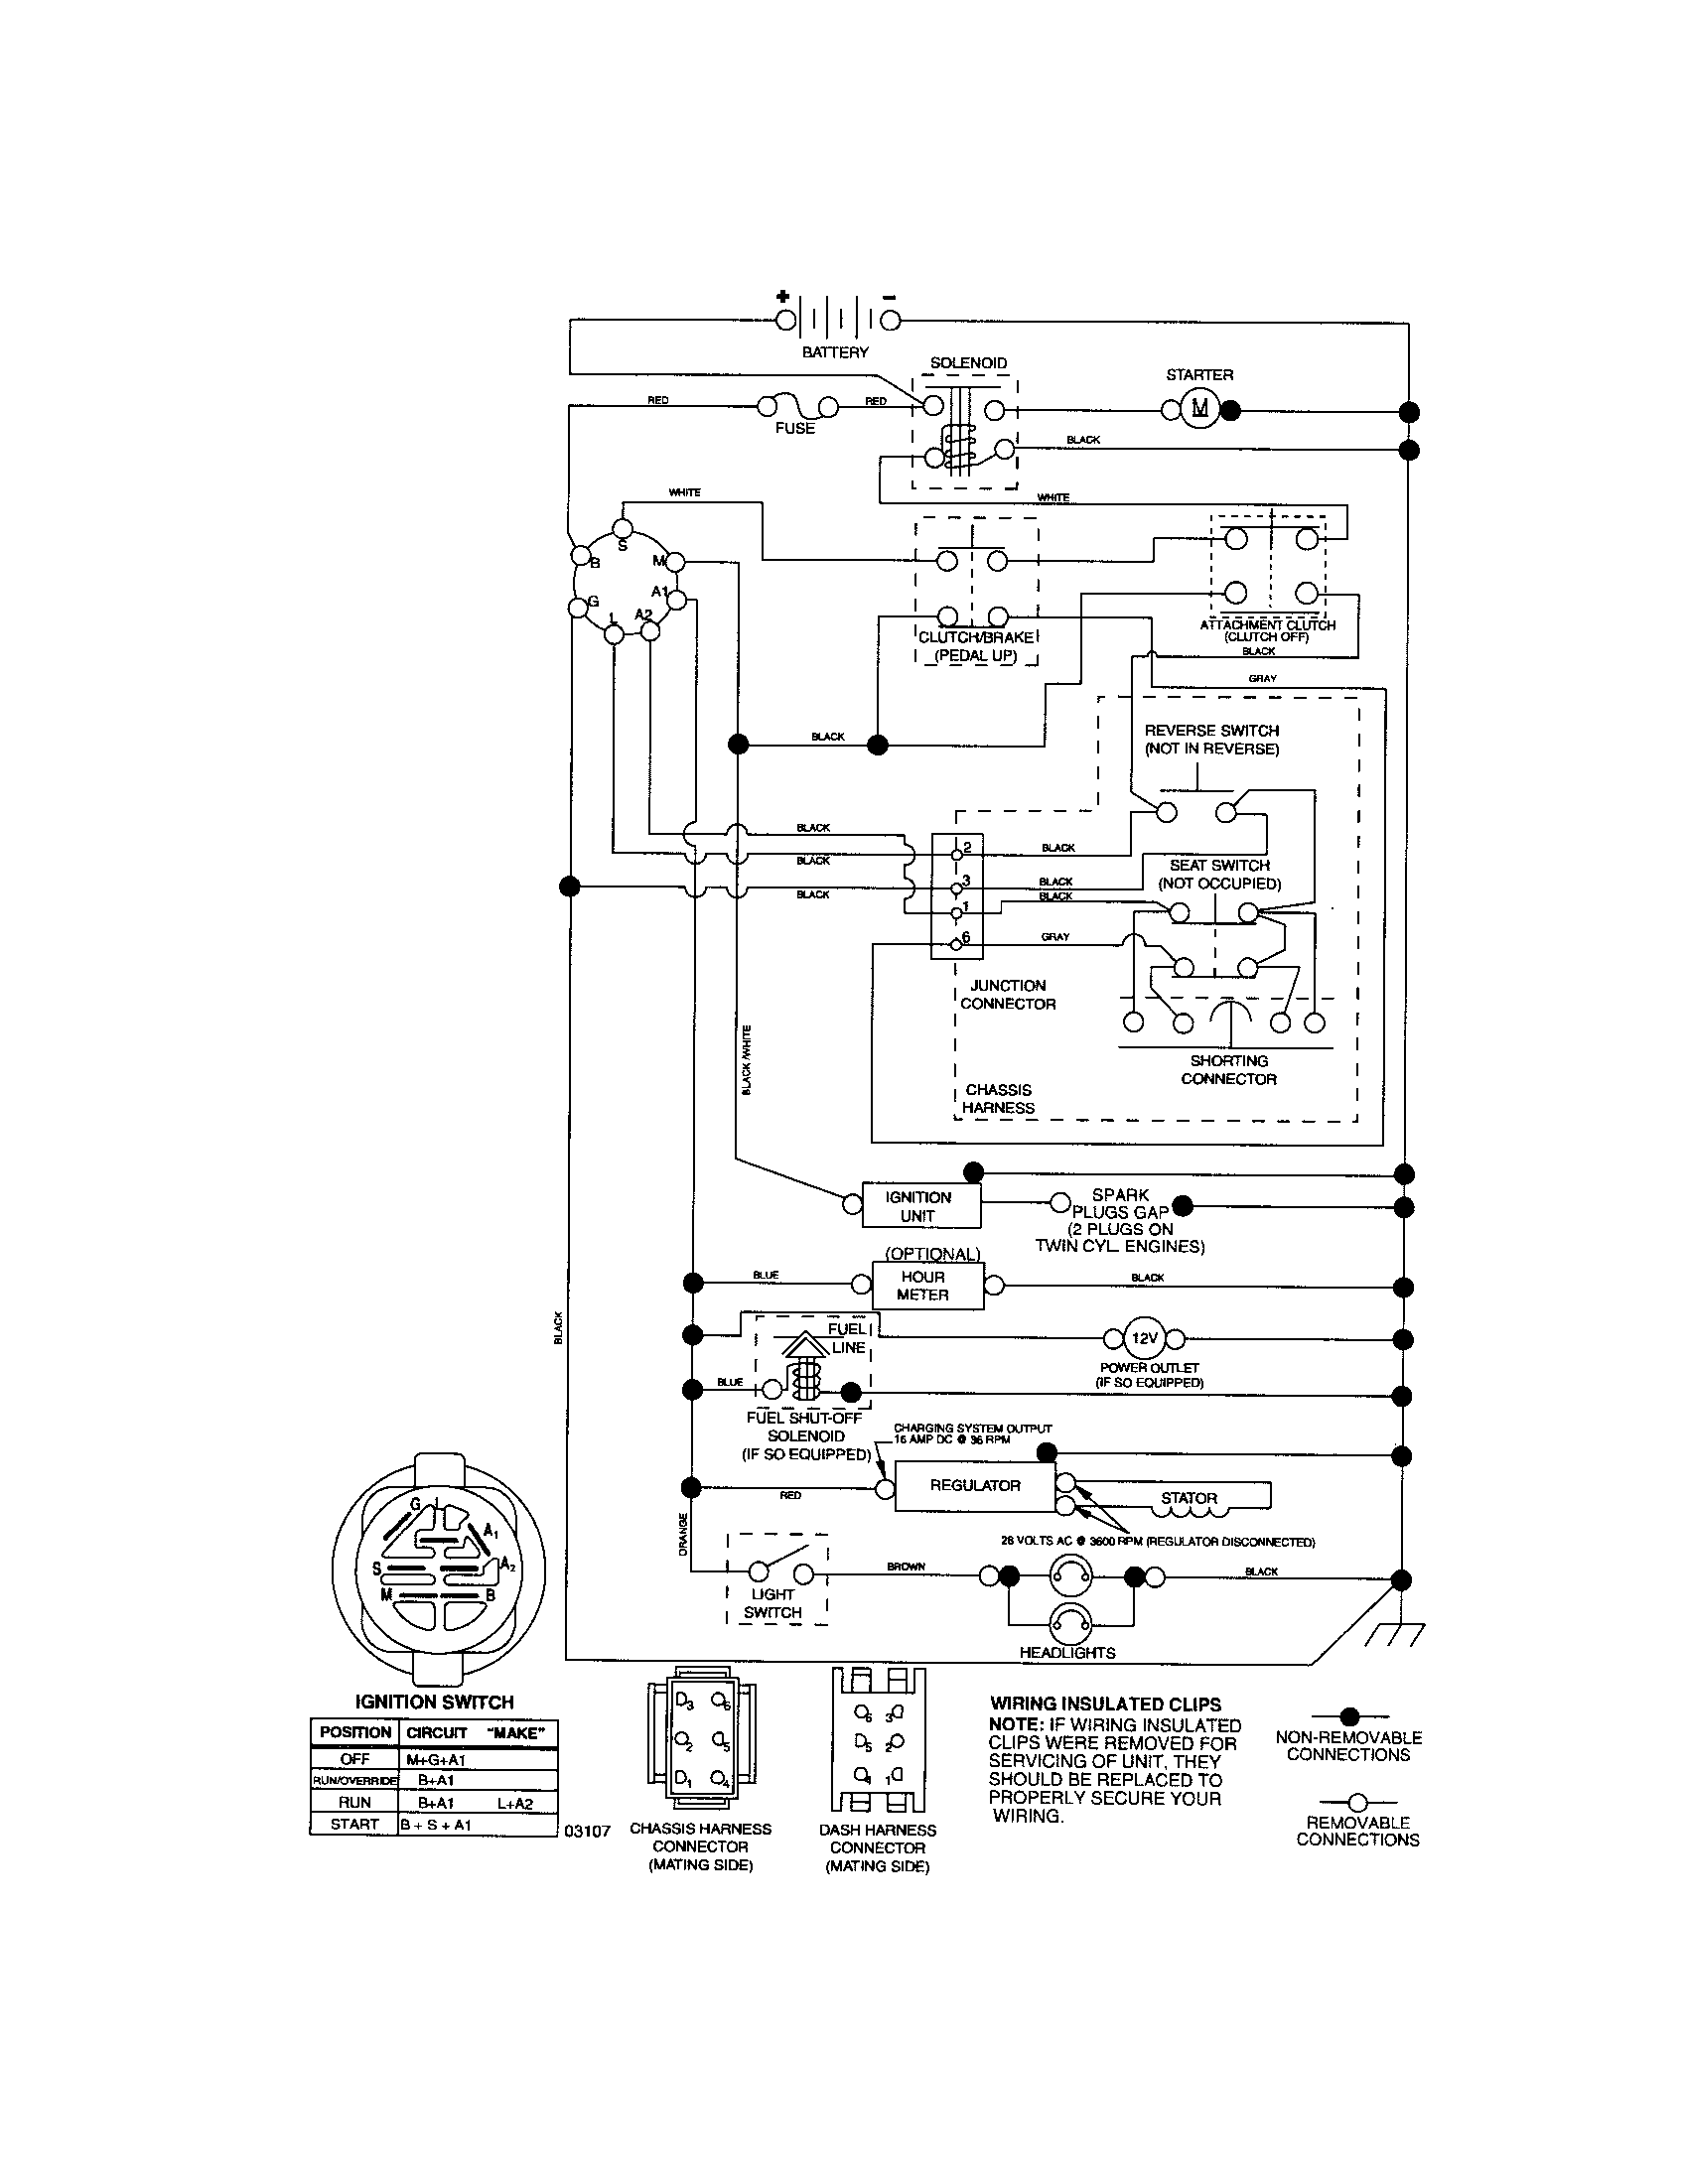 6af5f1447fd13c8443376822ddc1e105 craftsman riding mower electrical diagram wiring diagram john deere riding mower wiring diagram at mifinder.co